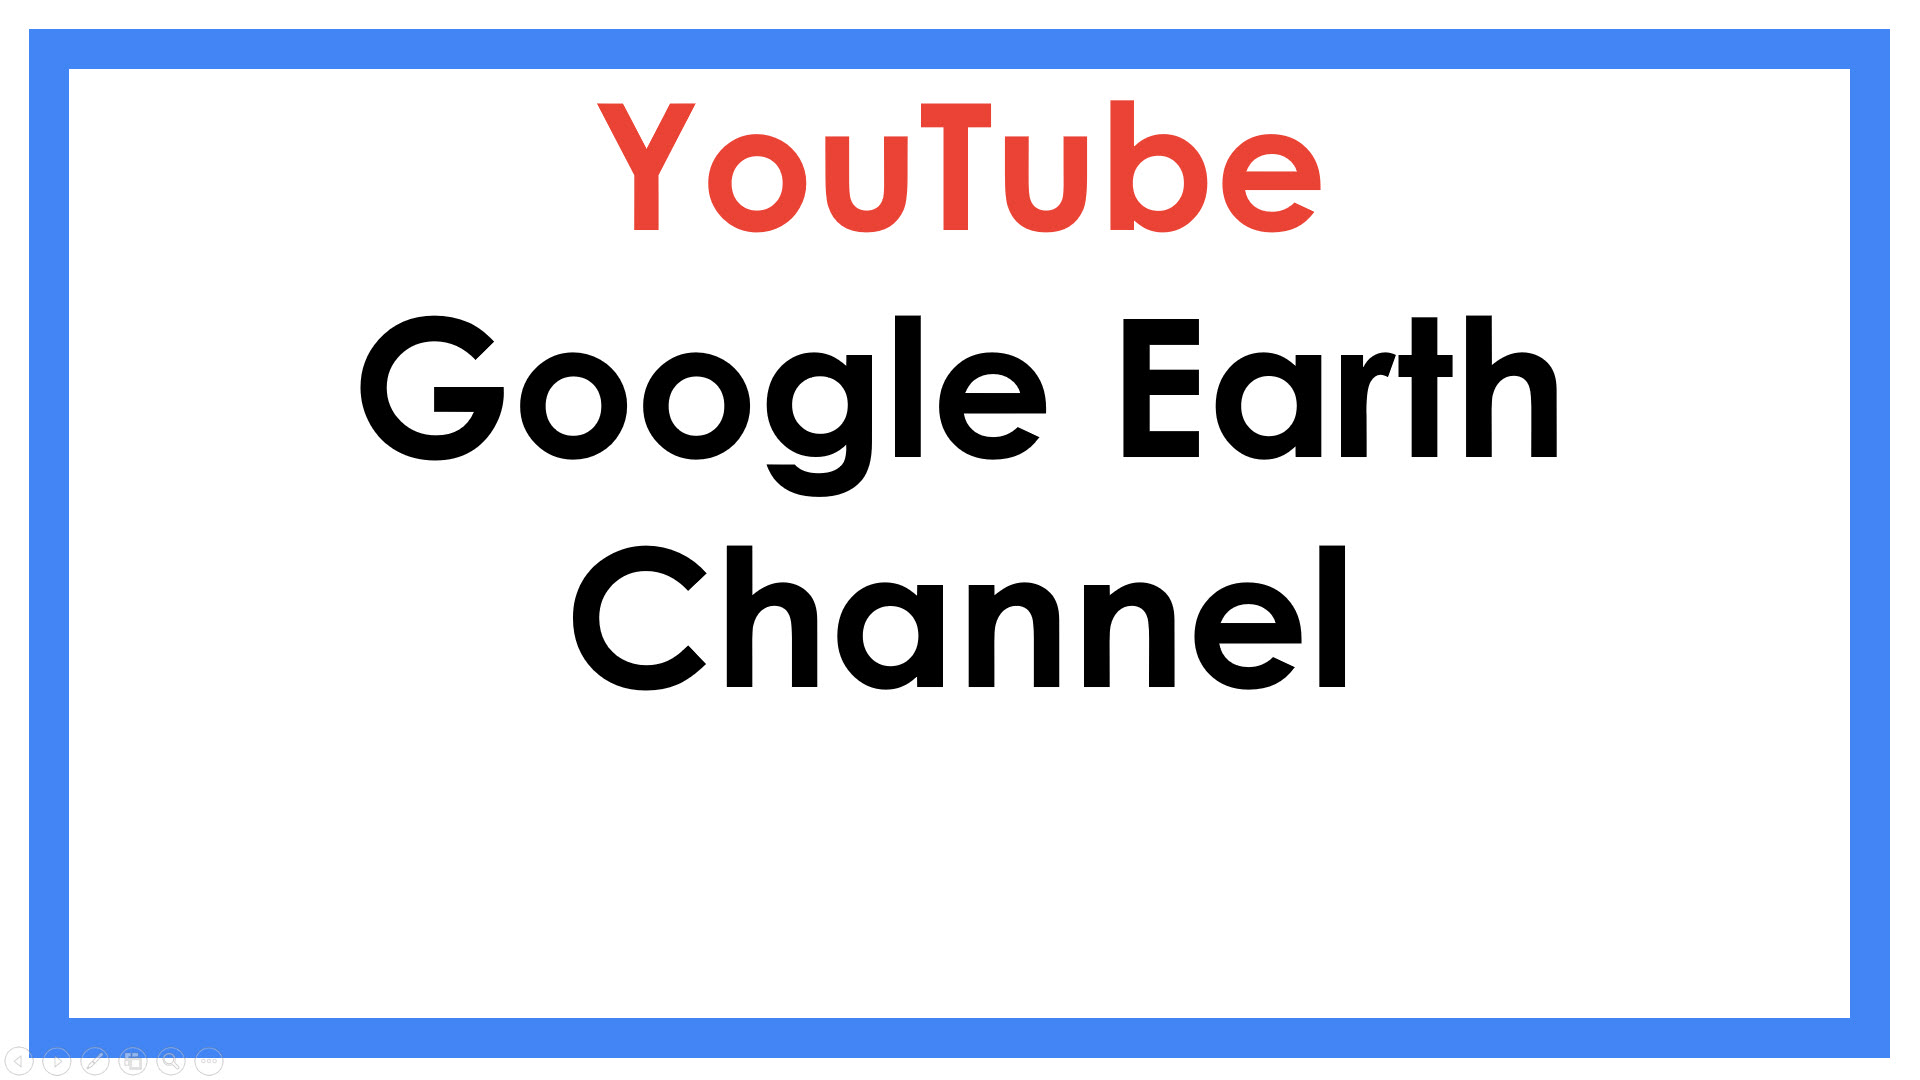 Google Earth YouTube Channel